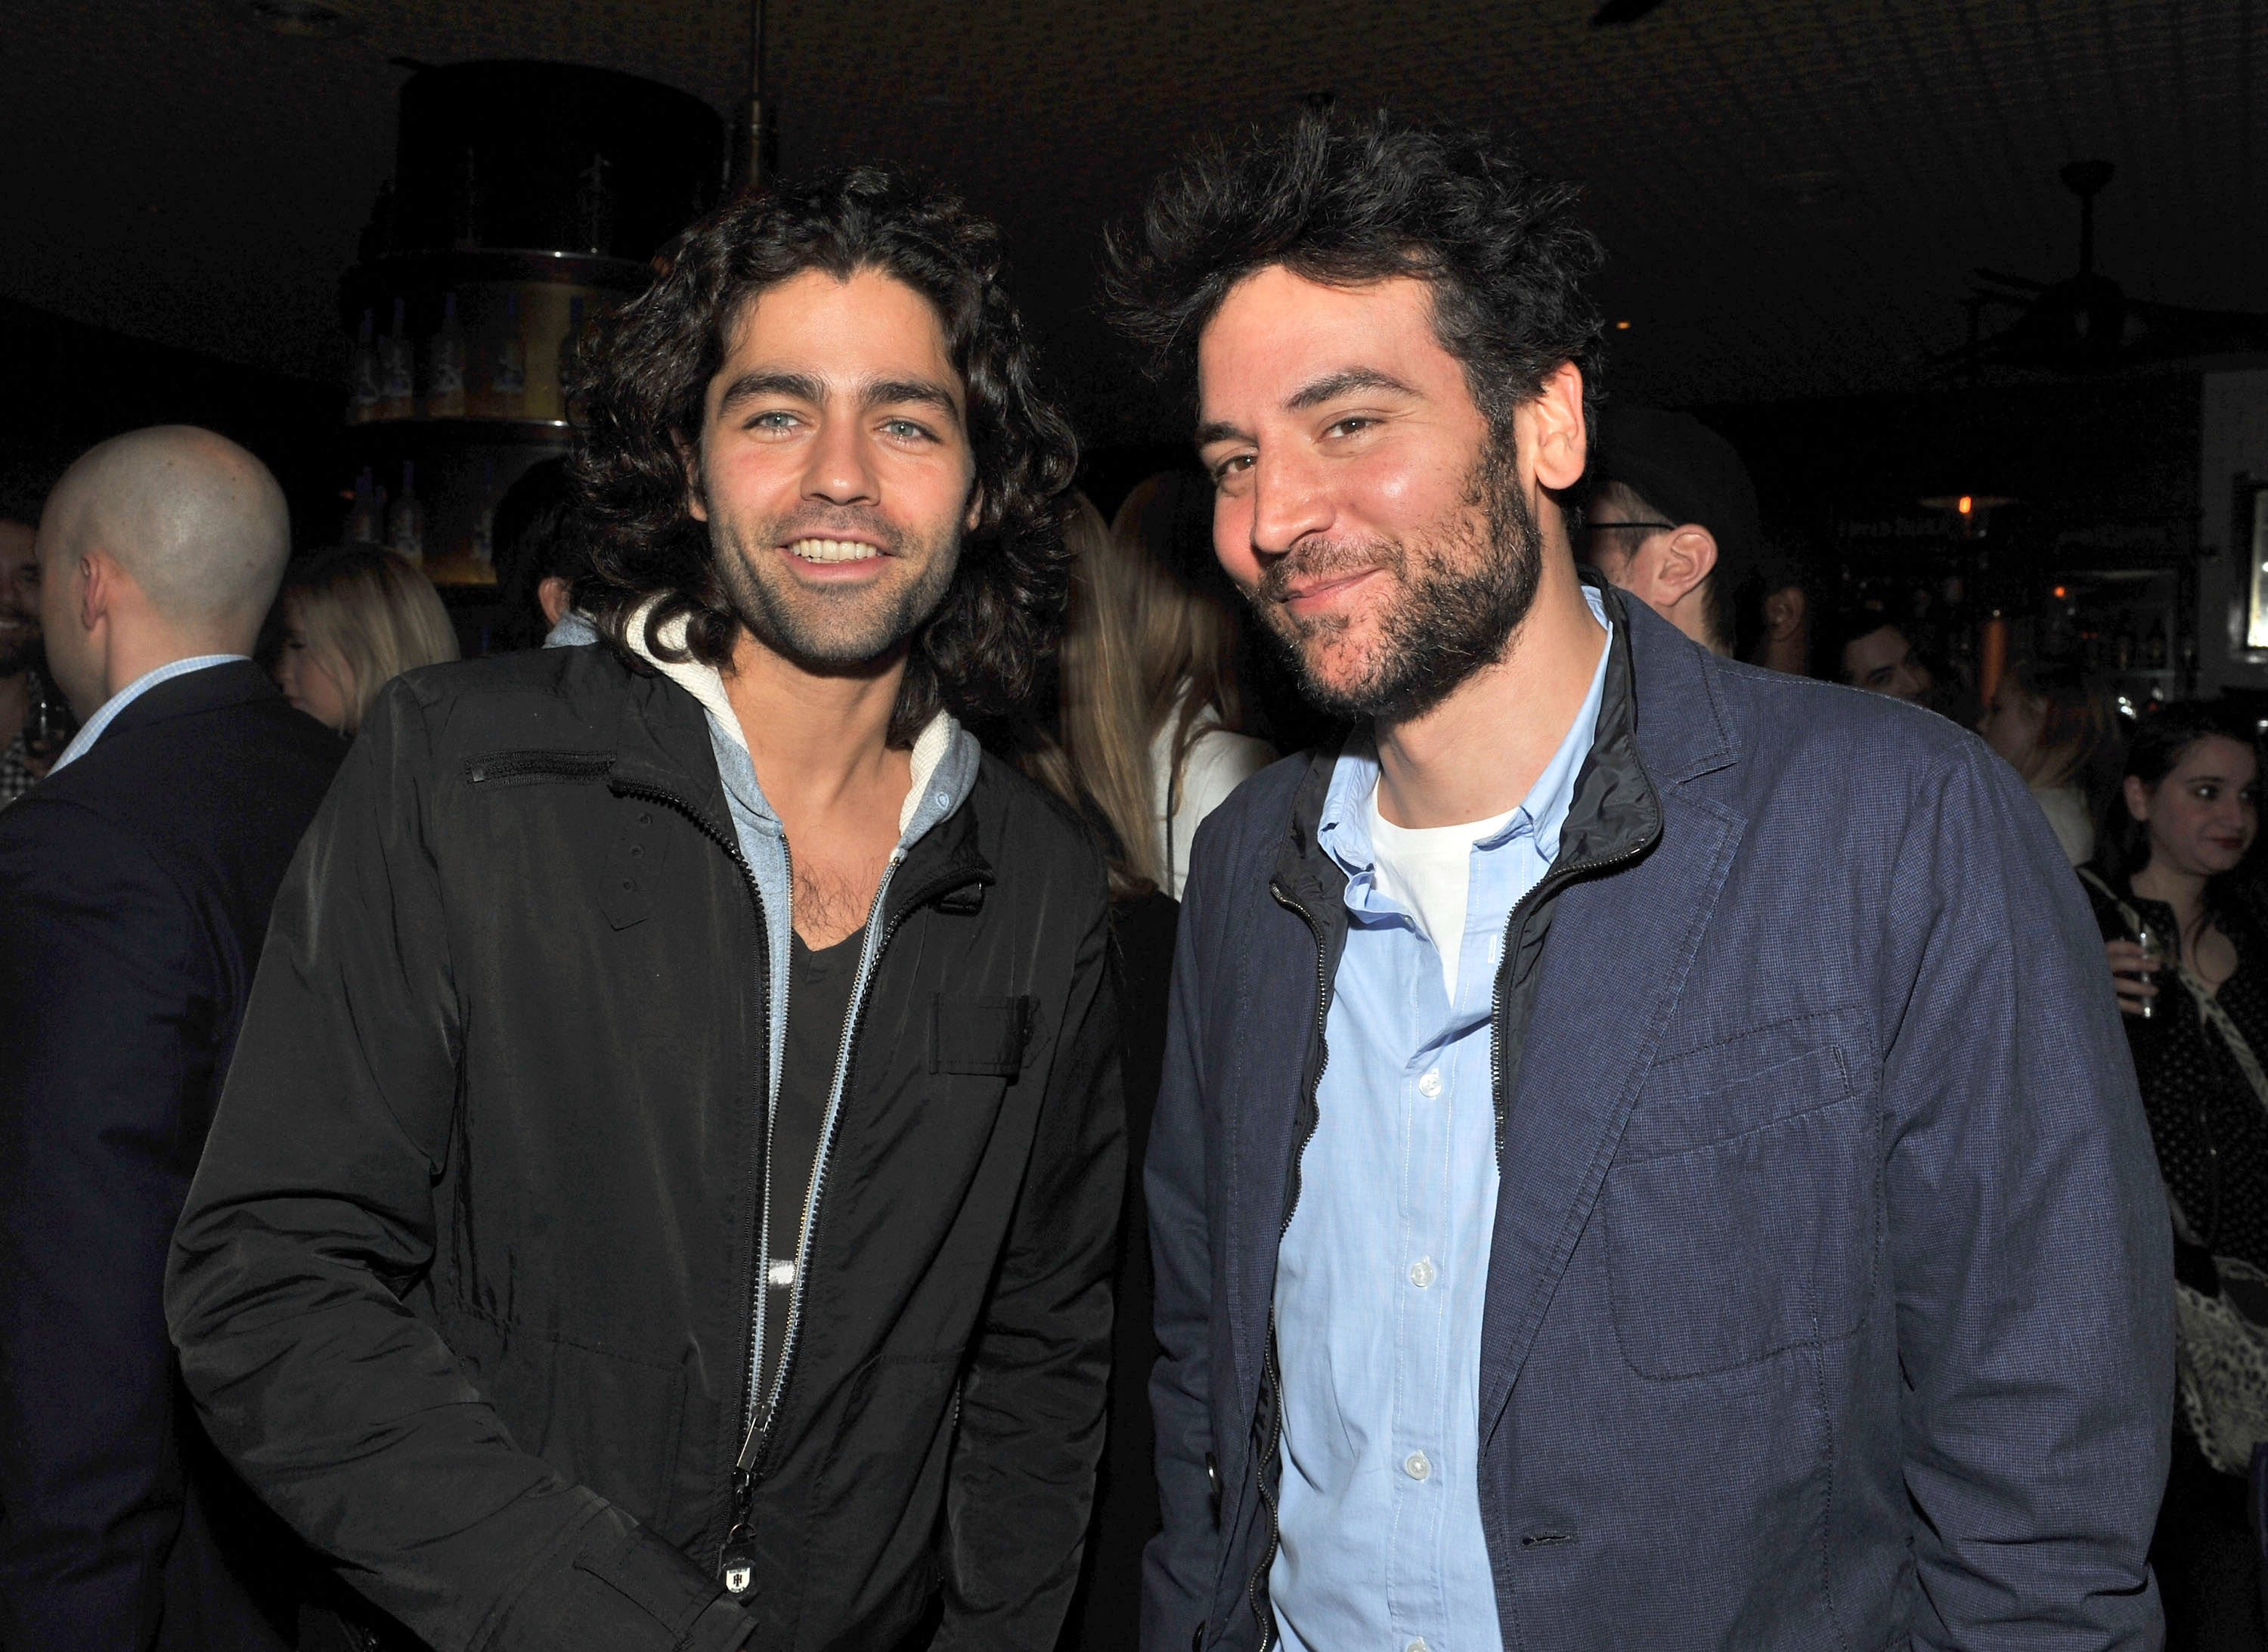 Adrian Grenier and Josh Radnor teamed up for t